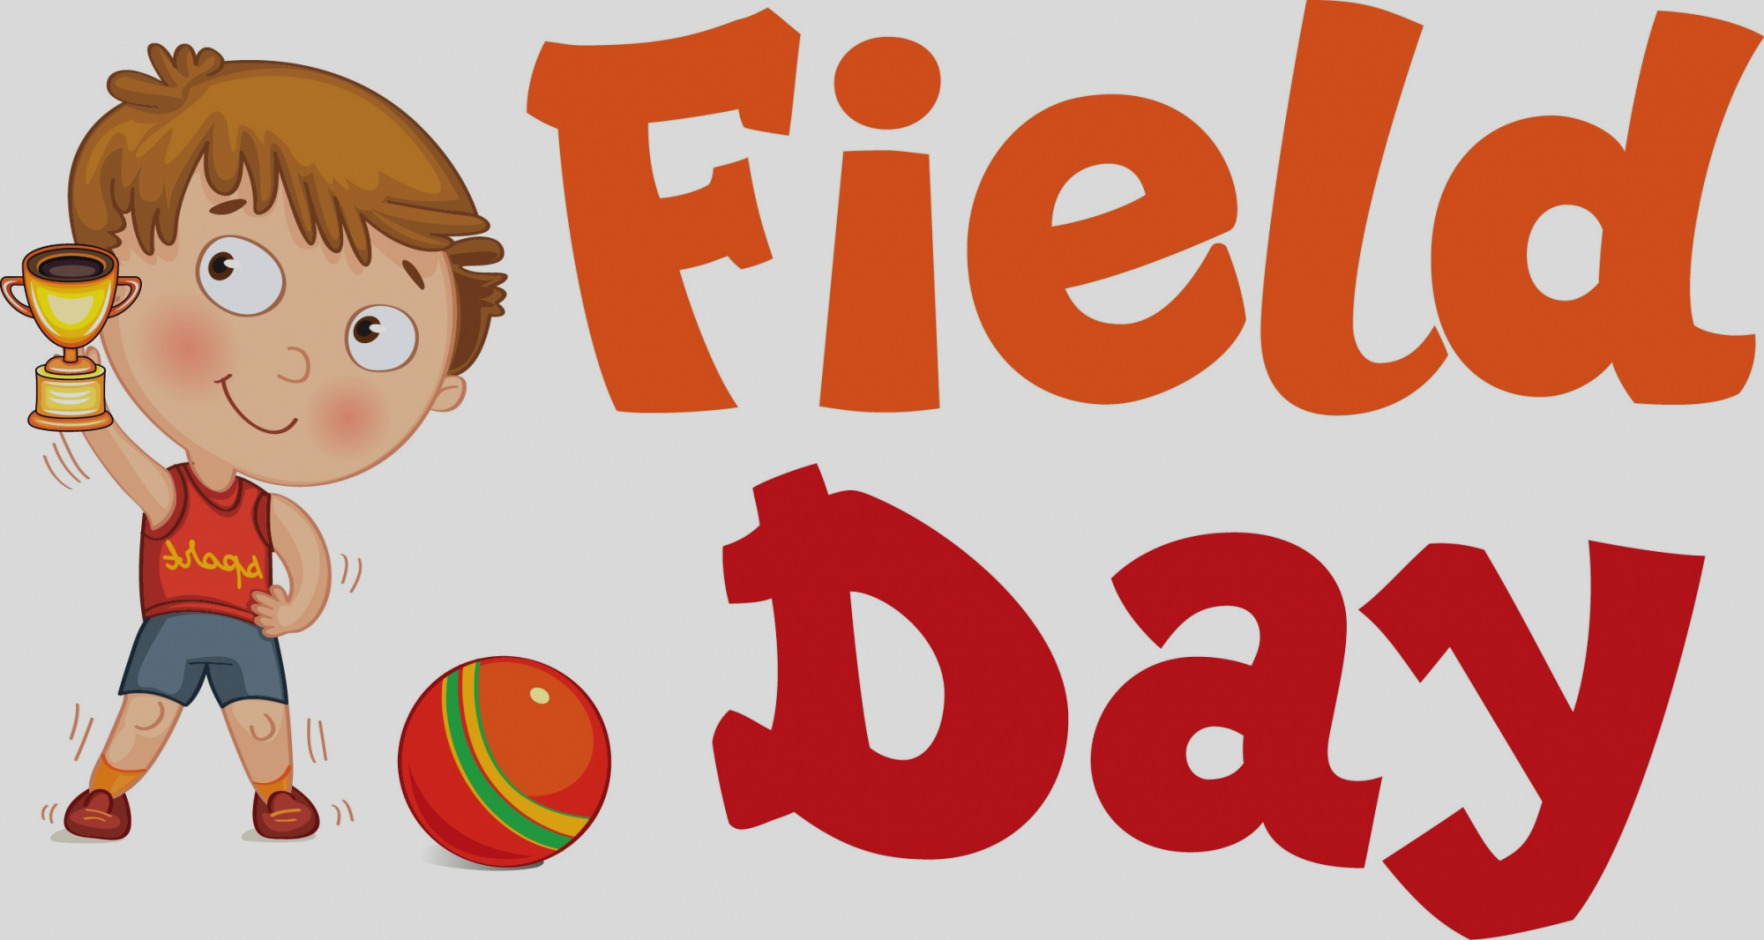 Field clipart banner. Trend may clip art